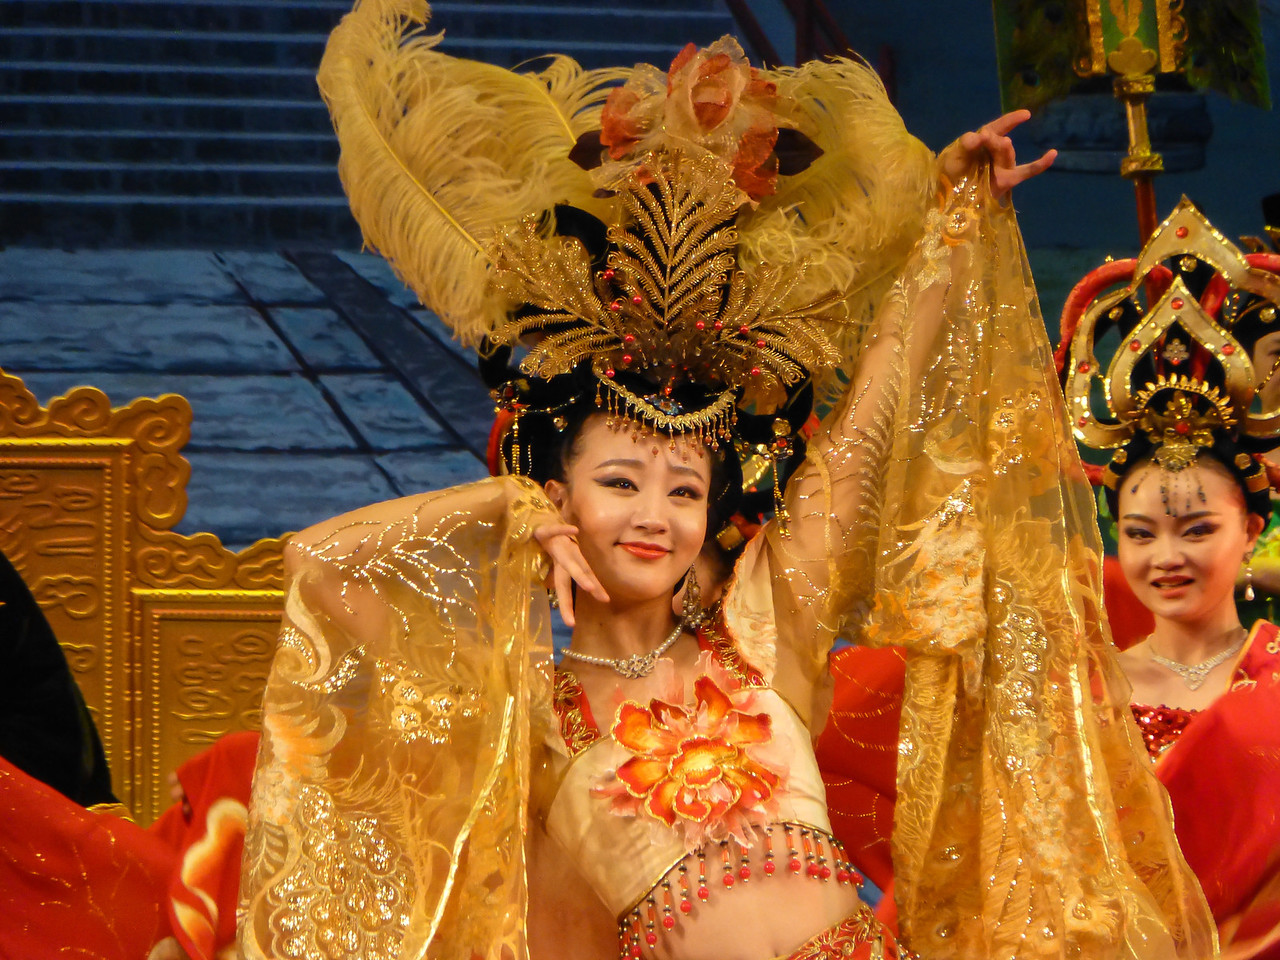 The Chinese can certainly entertain with gorgeous costumes and exquisite choreography.